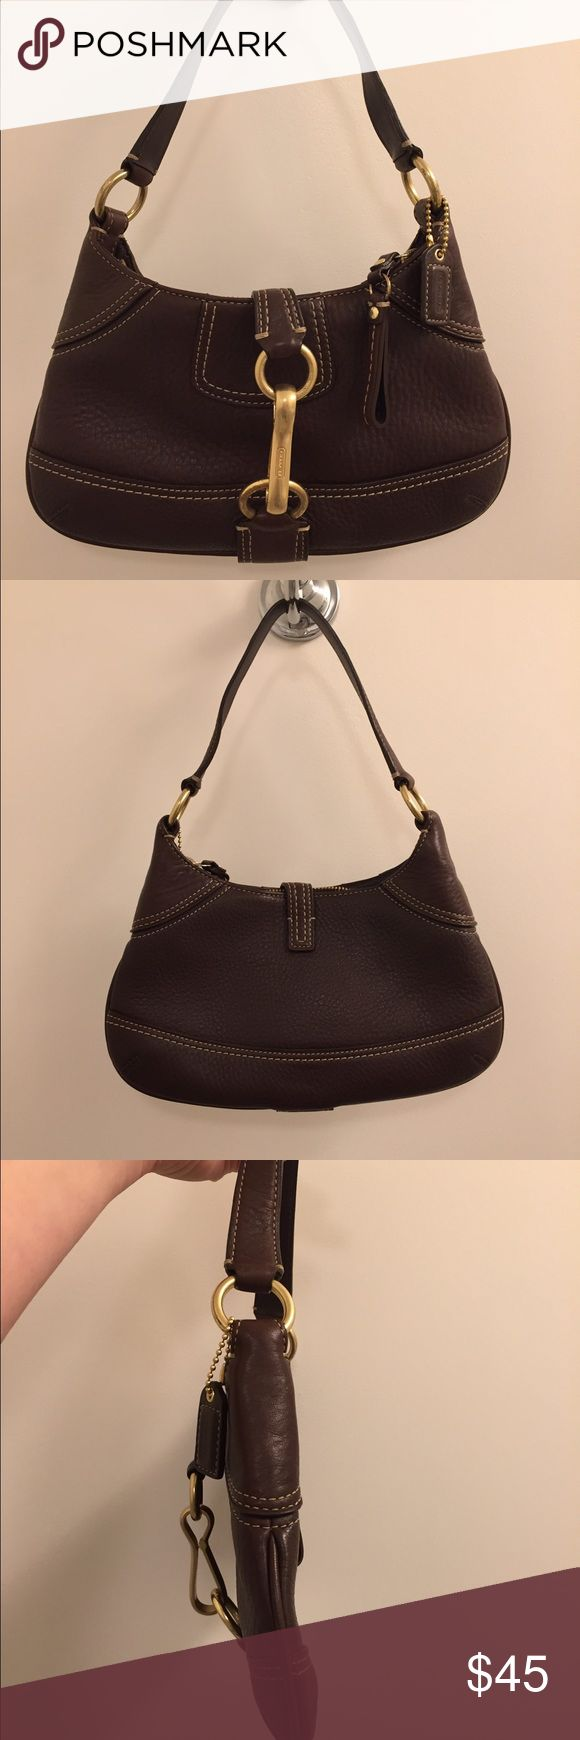 Brown leather Coach Hobo Bag Brown leather and brass accented Coach Hobo Bag.  Leather is in great condition but there is wear on the metal rings (as shown in the photographs). Coach Bags Hobos